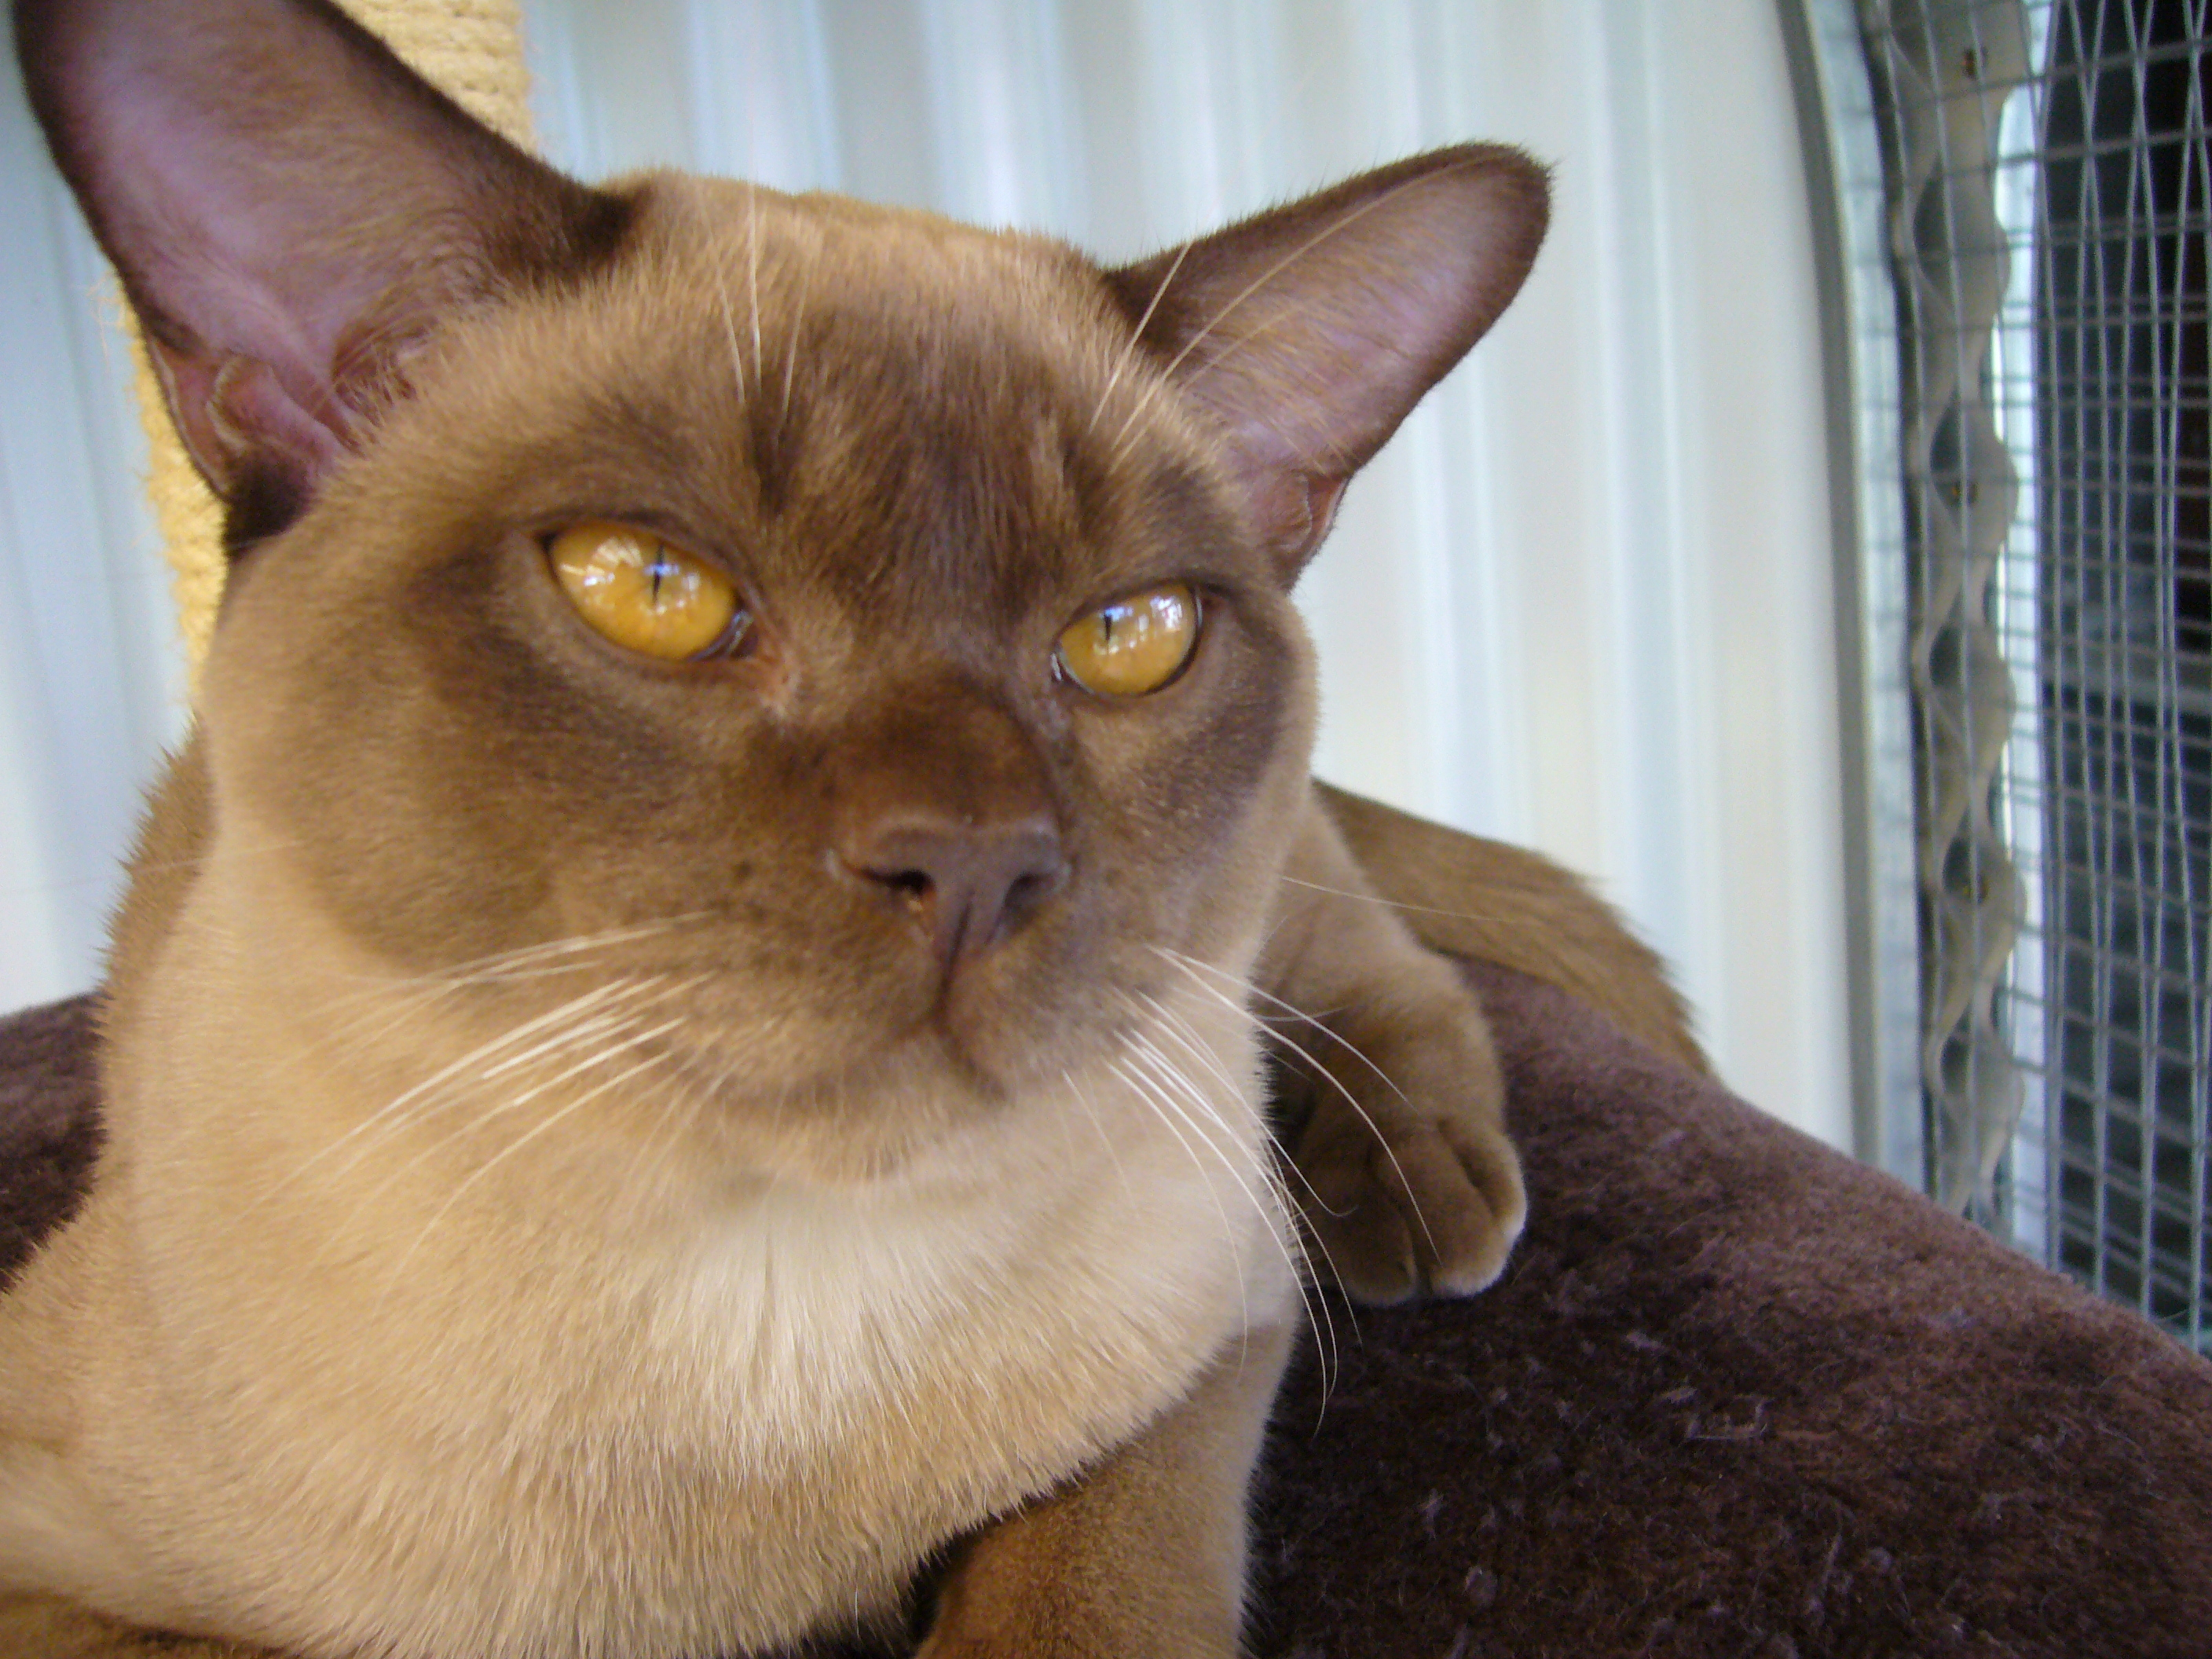 Burmese Cat: Burmese About Burmese Natmac Cats Kittens What Natmac Burmese Do Burmese Kittens Burmese Cats Breed